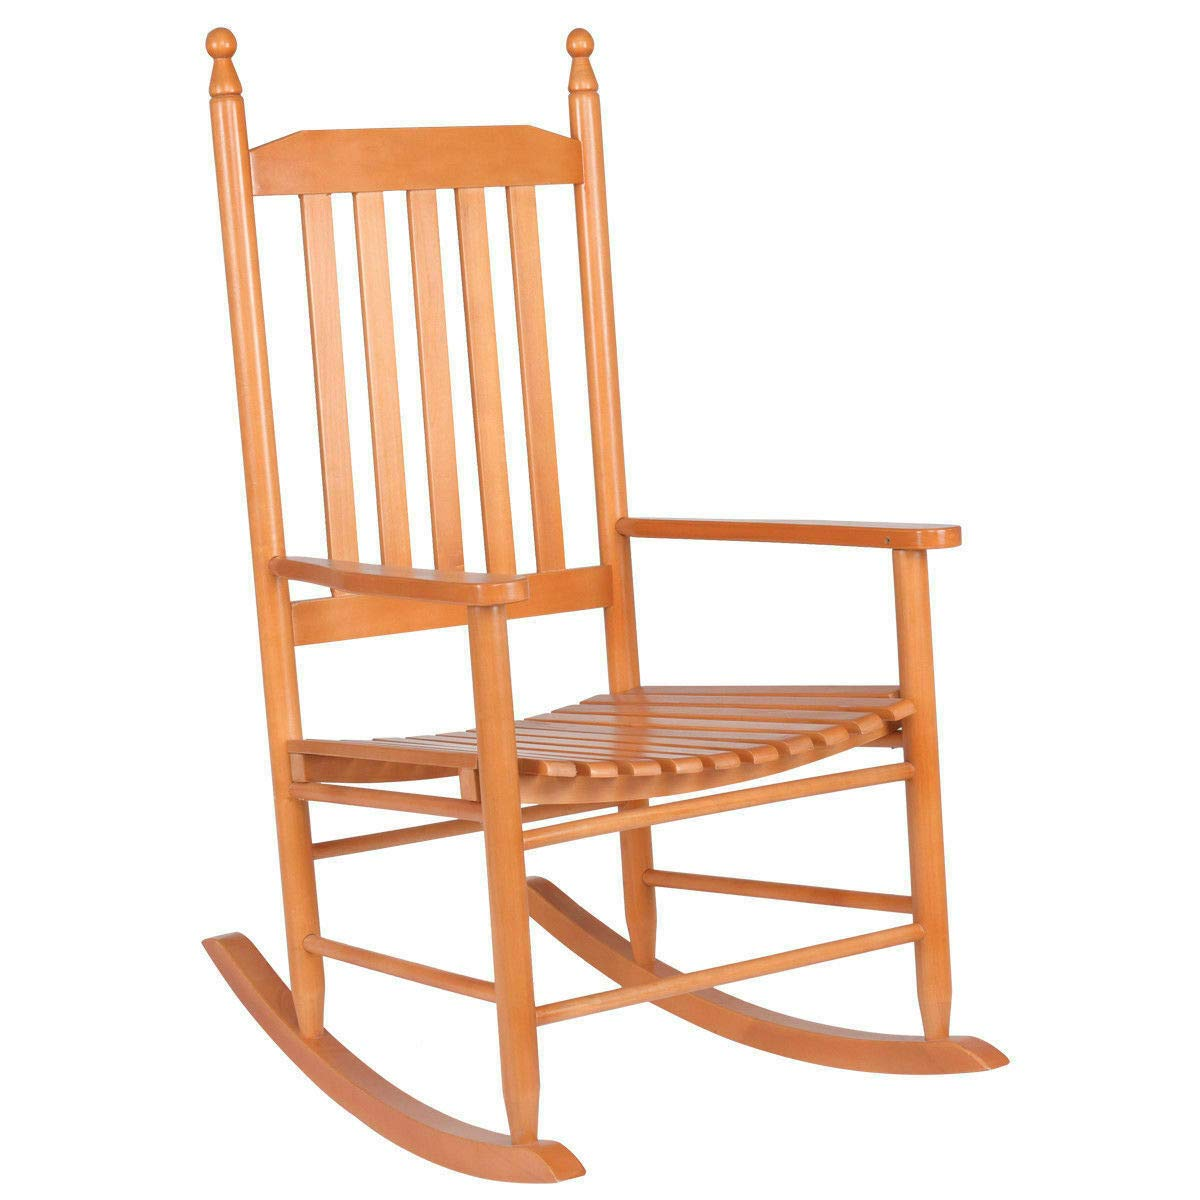 Seleq Natural Hard Wood Rocking Chair by Seleq